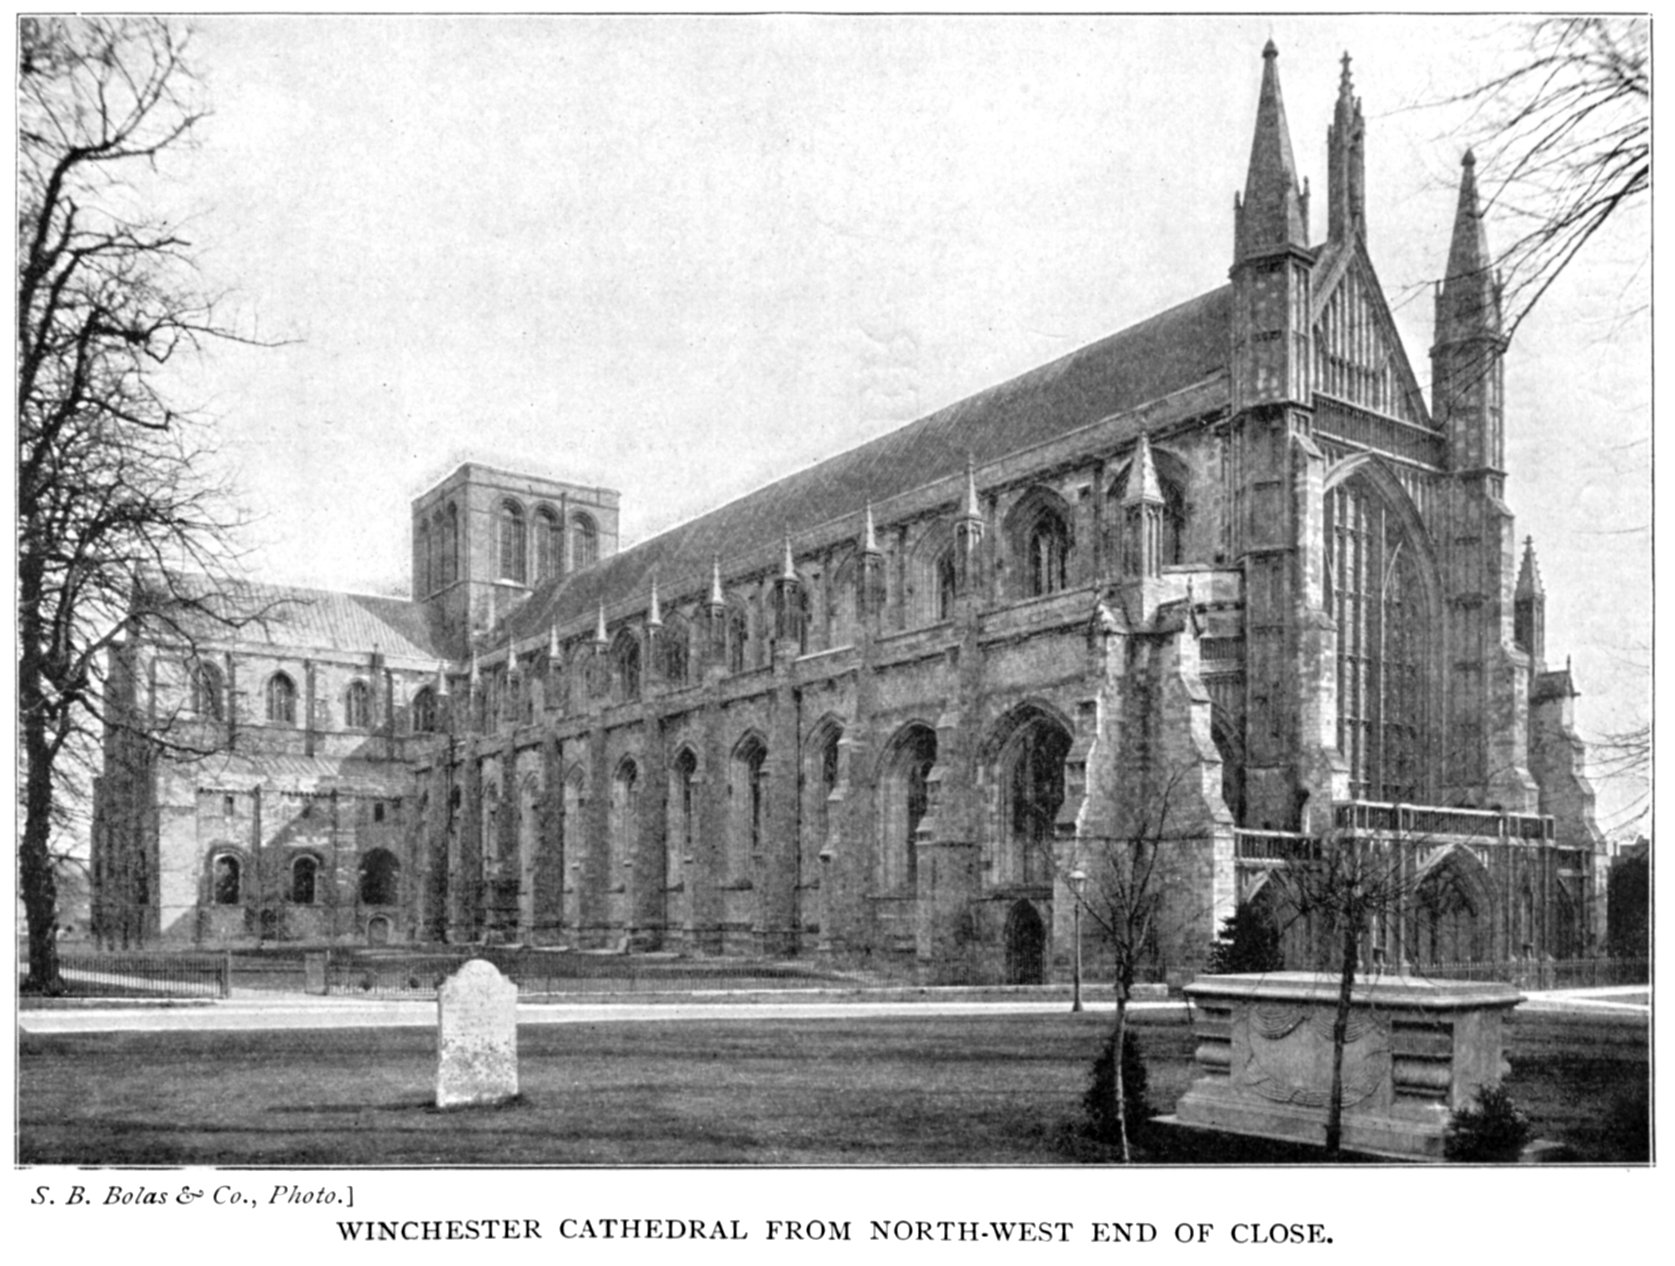 The project gutenberg ebook of bells cathedrals the cathedral winchester cathedral from north west end of close fandeluxe Image collections